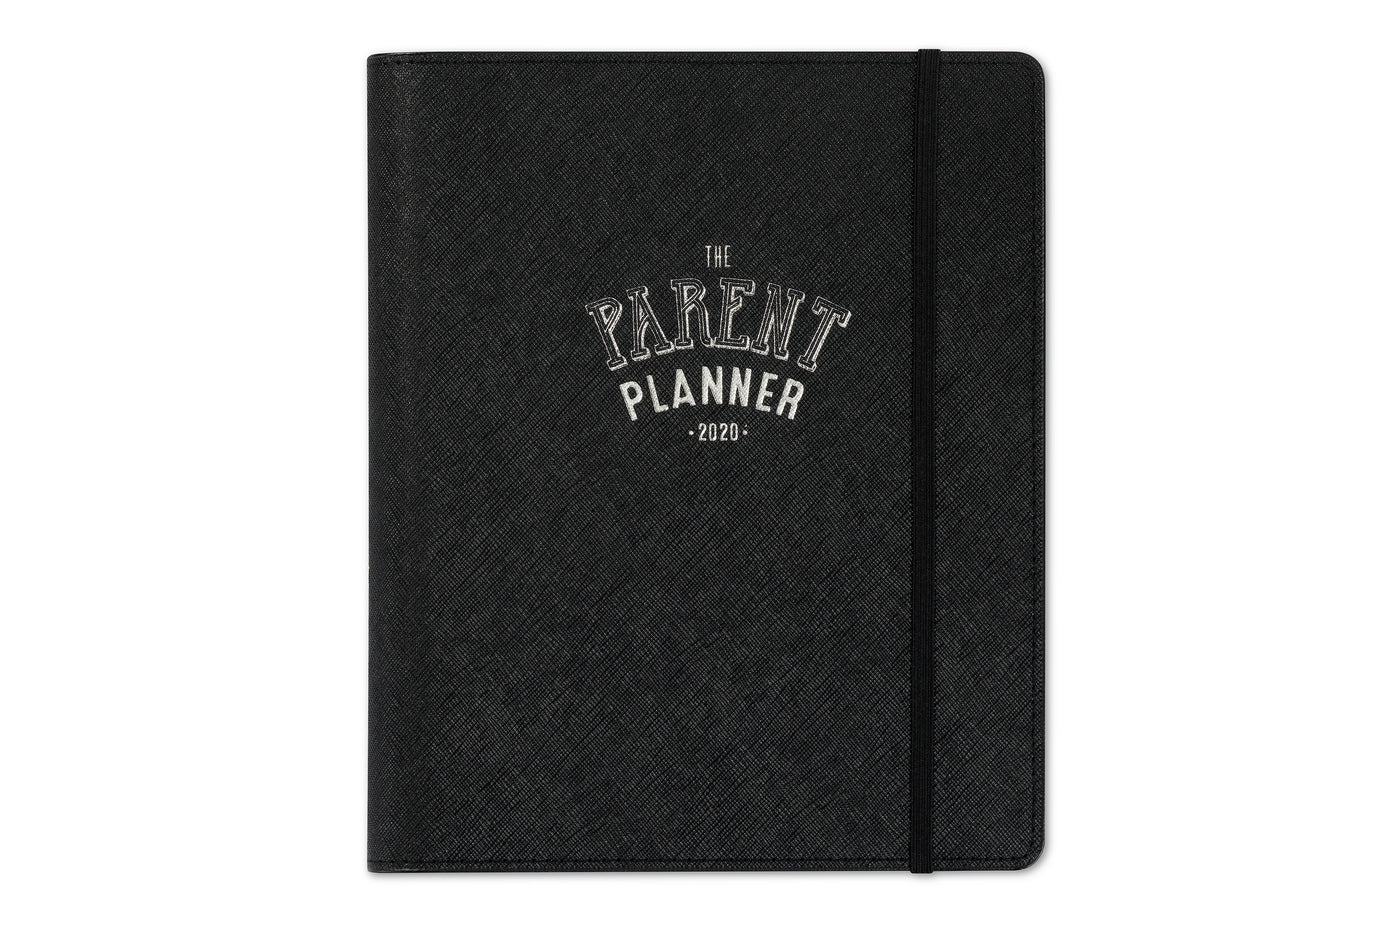 2020 parent planner for mom or dad